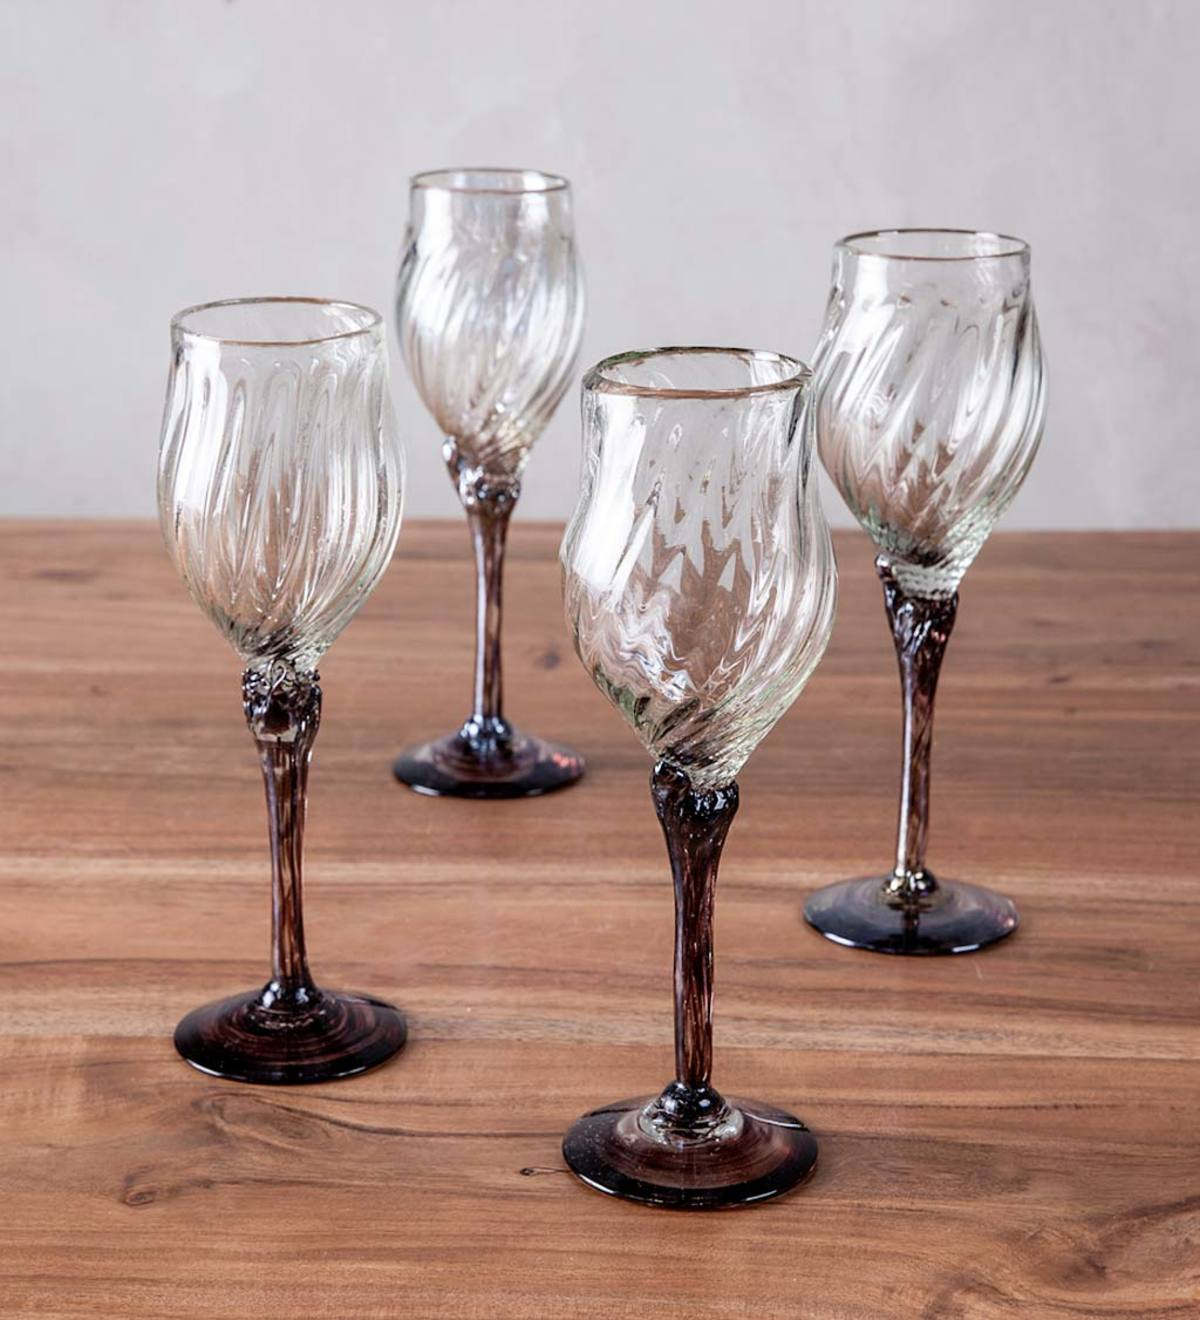 Stormy Stem Recycled Wine Glasses